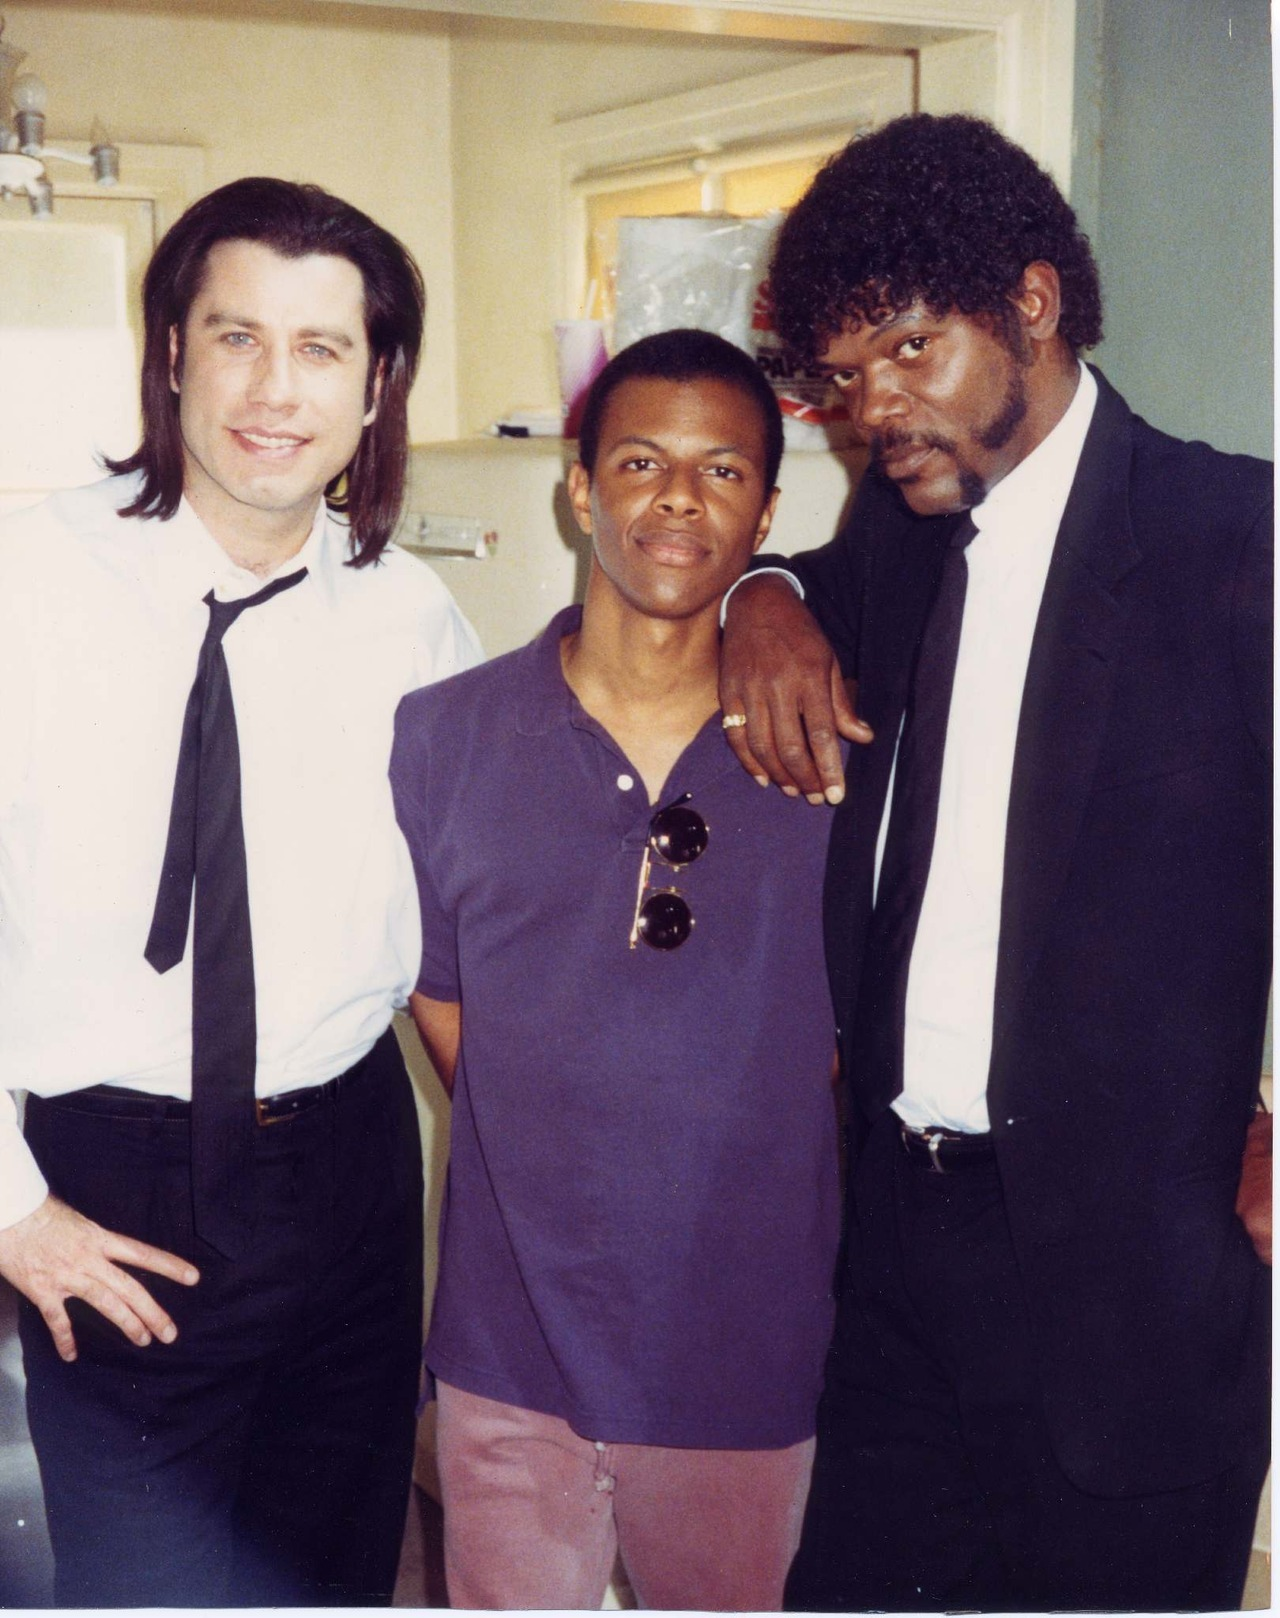 John Travolta, Phil Lamarr and Samuel L. Jackson on the set of Pulp Fiction